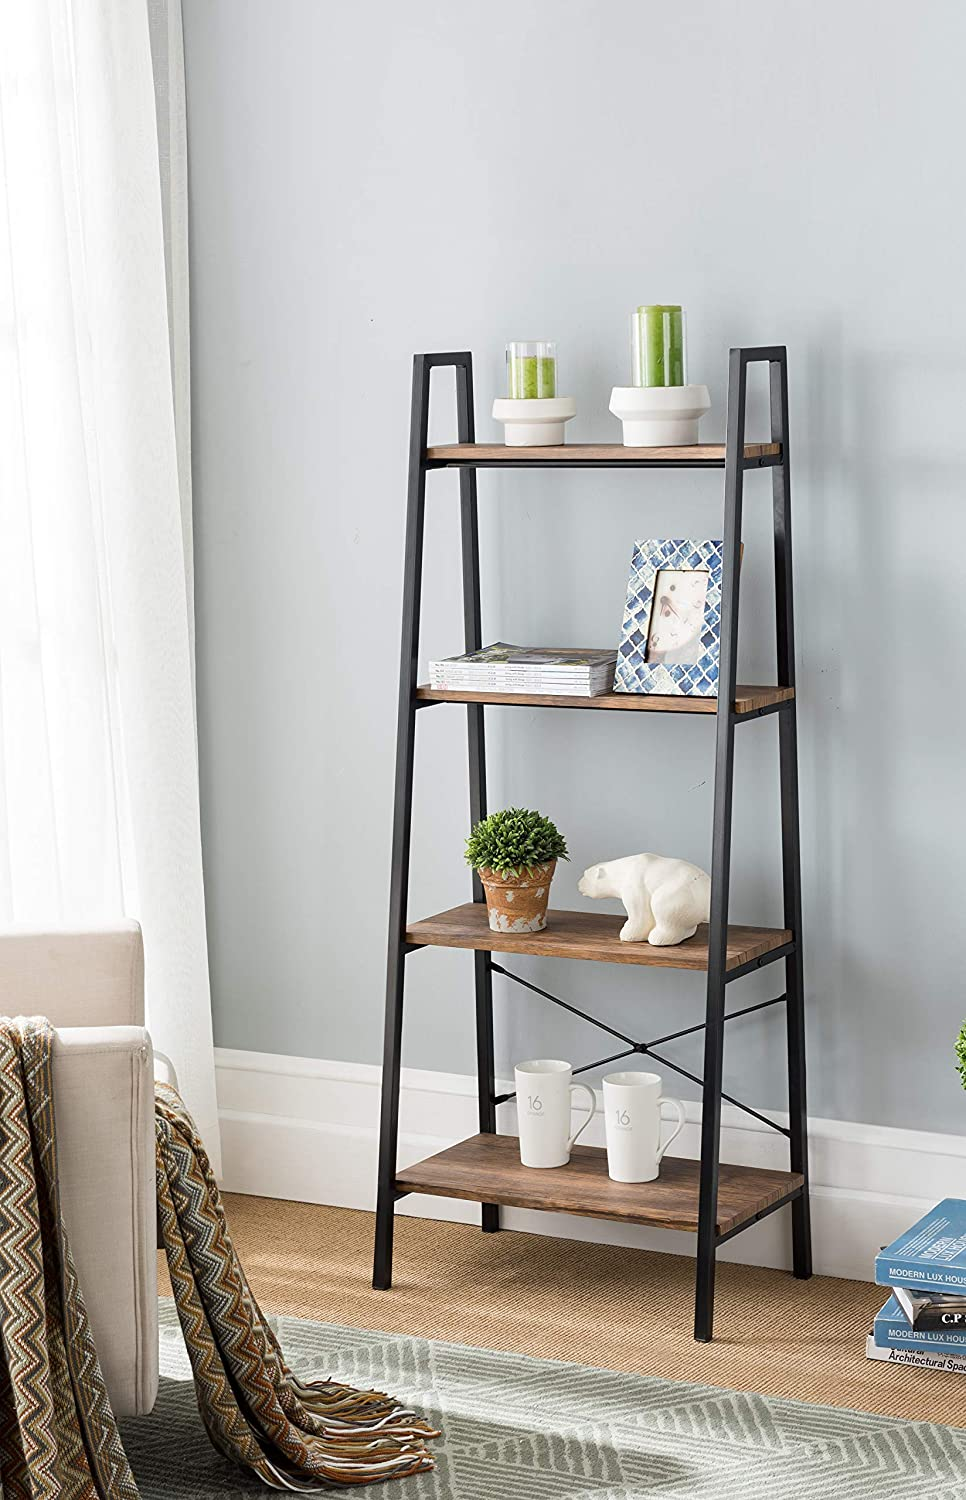 None Vintage Finish Metal Frame 4-tier Ladder Shelf Bookcase Bookshelf Accent, Plant Stand Storage Garden, Bathroom